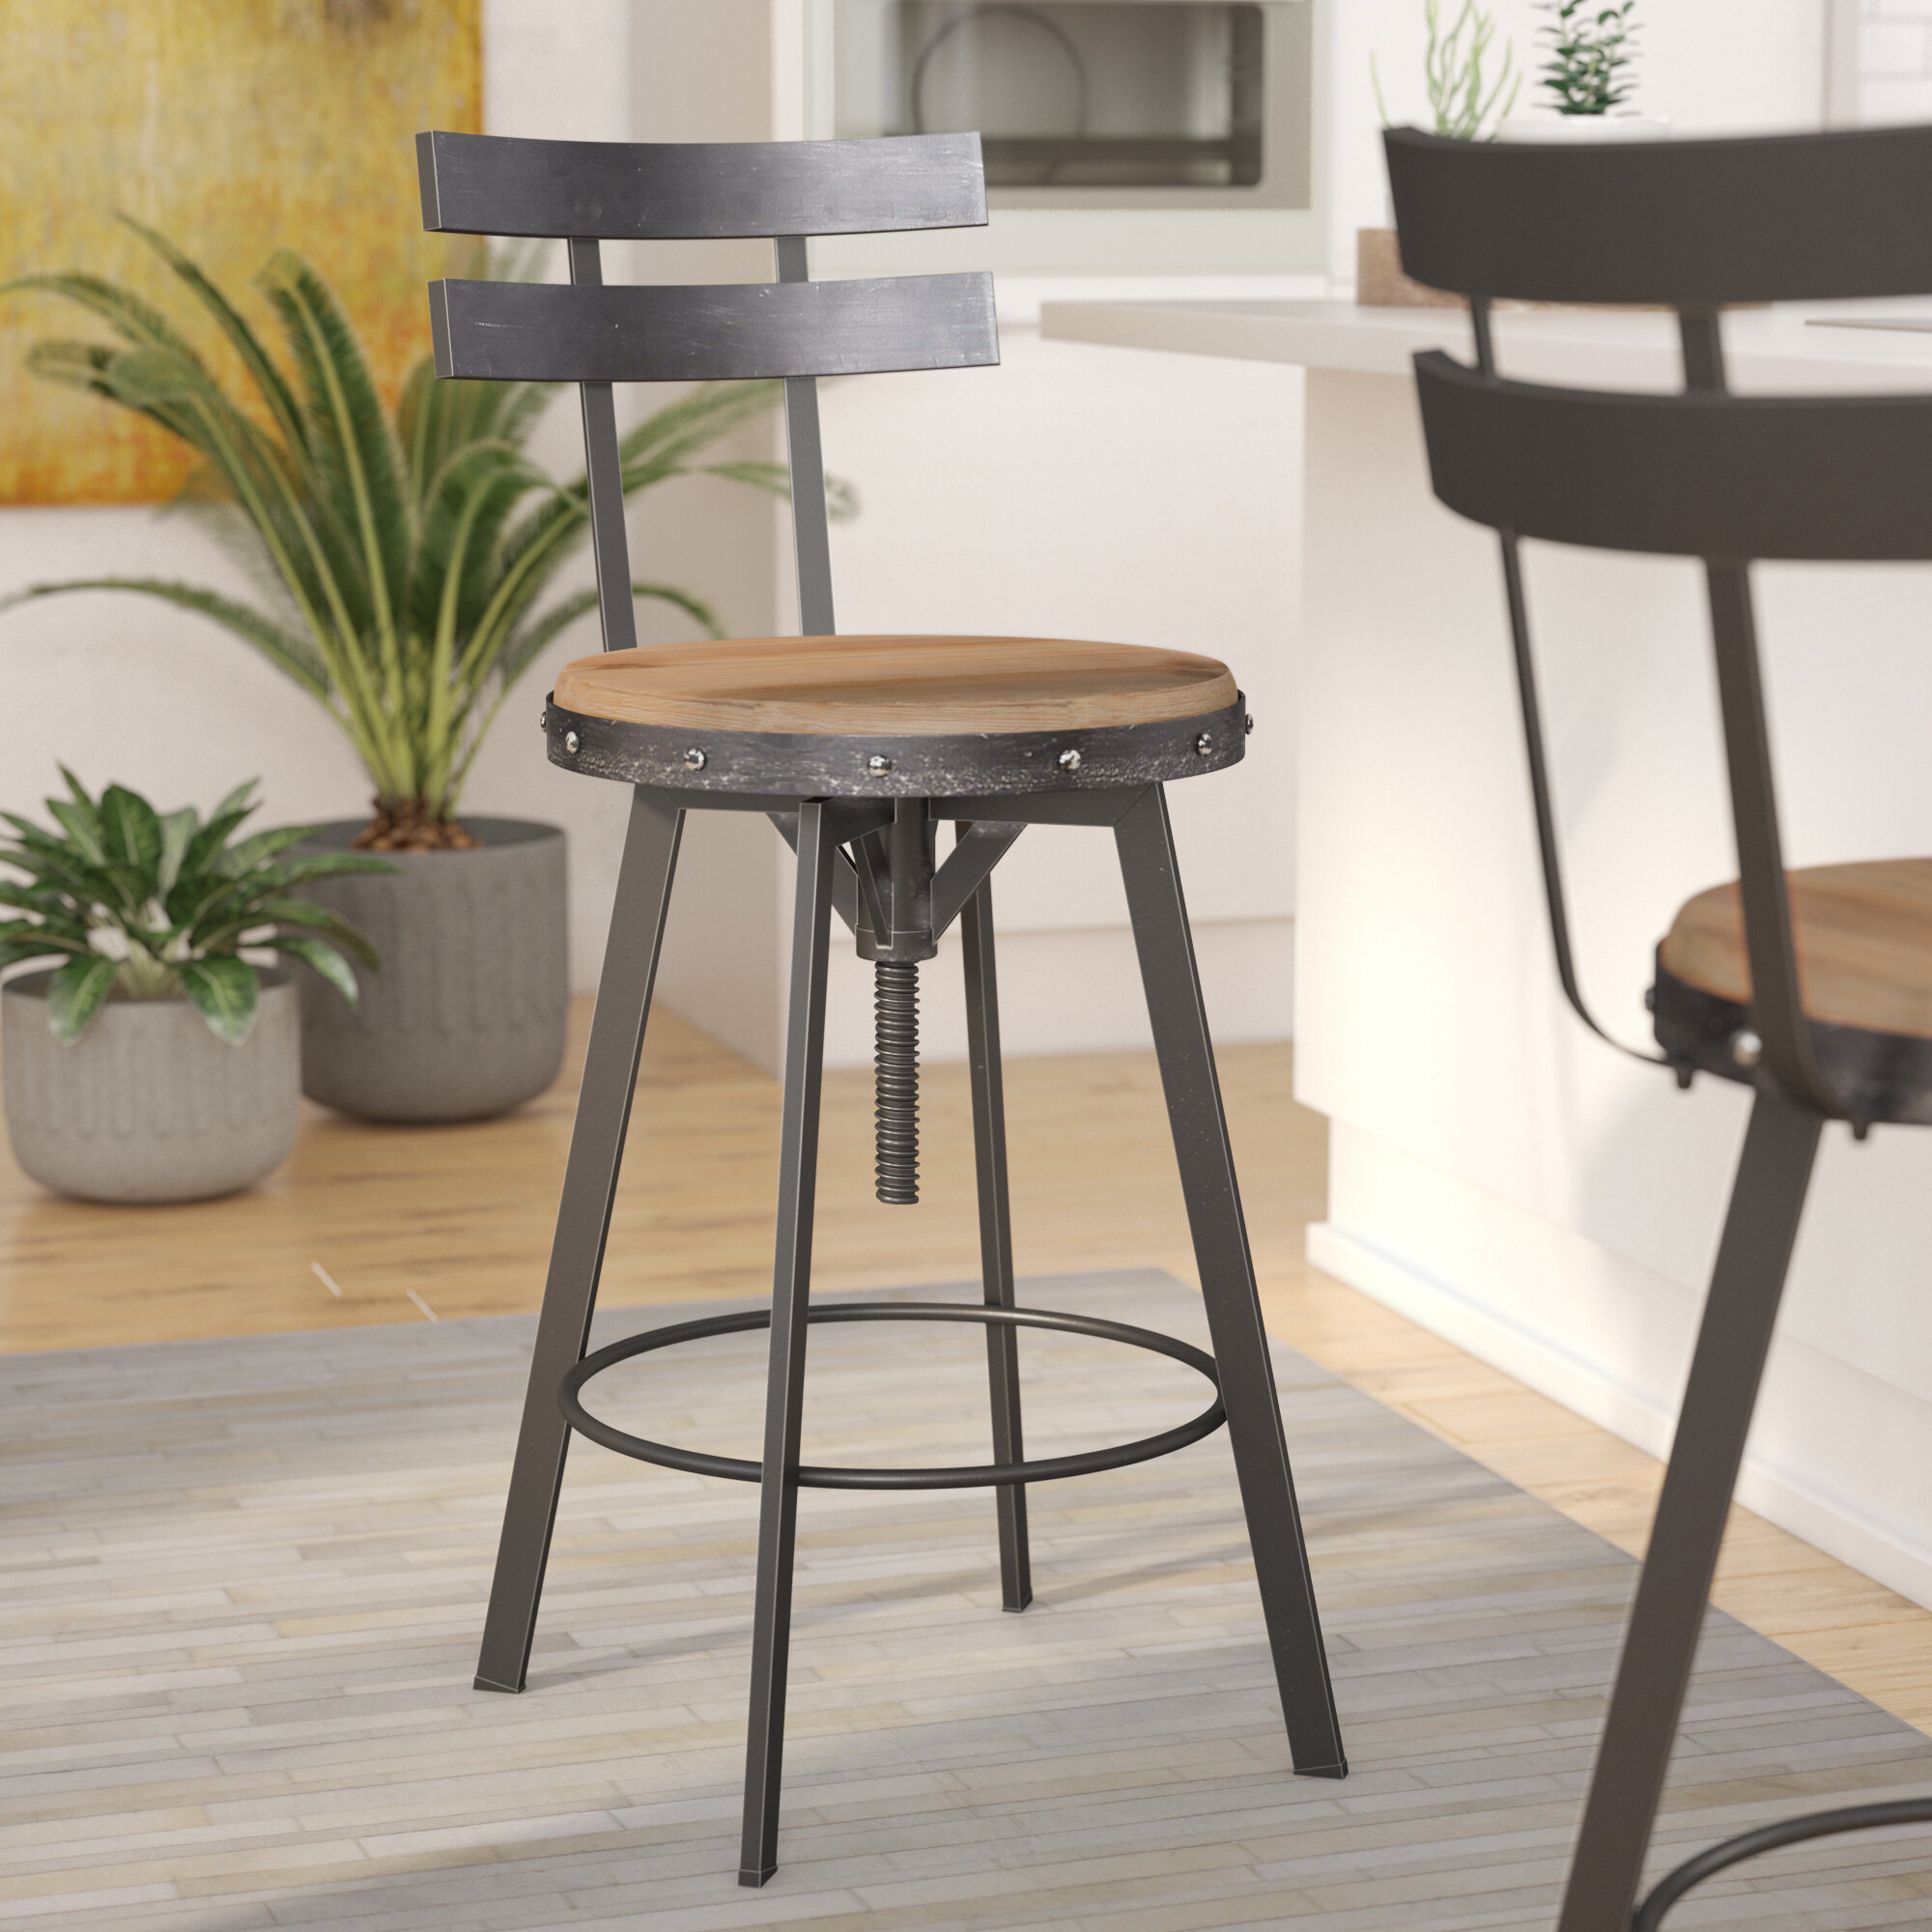 Amazing Sylvania Adjustable Height Swivel Bar Stool Gmtry Best Dining Table And Chair Ideas Images Gmtryco